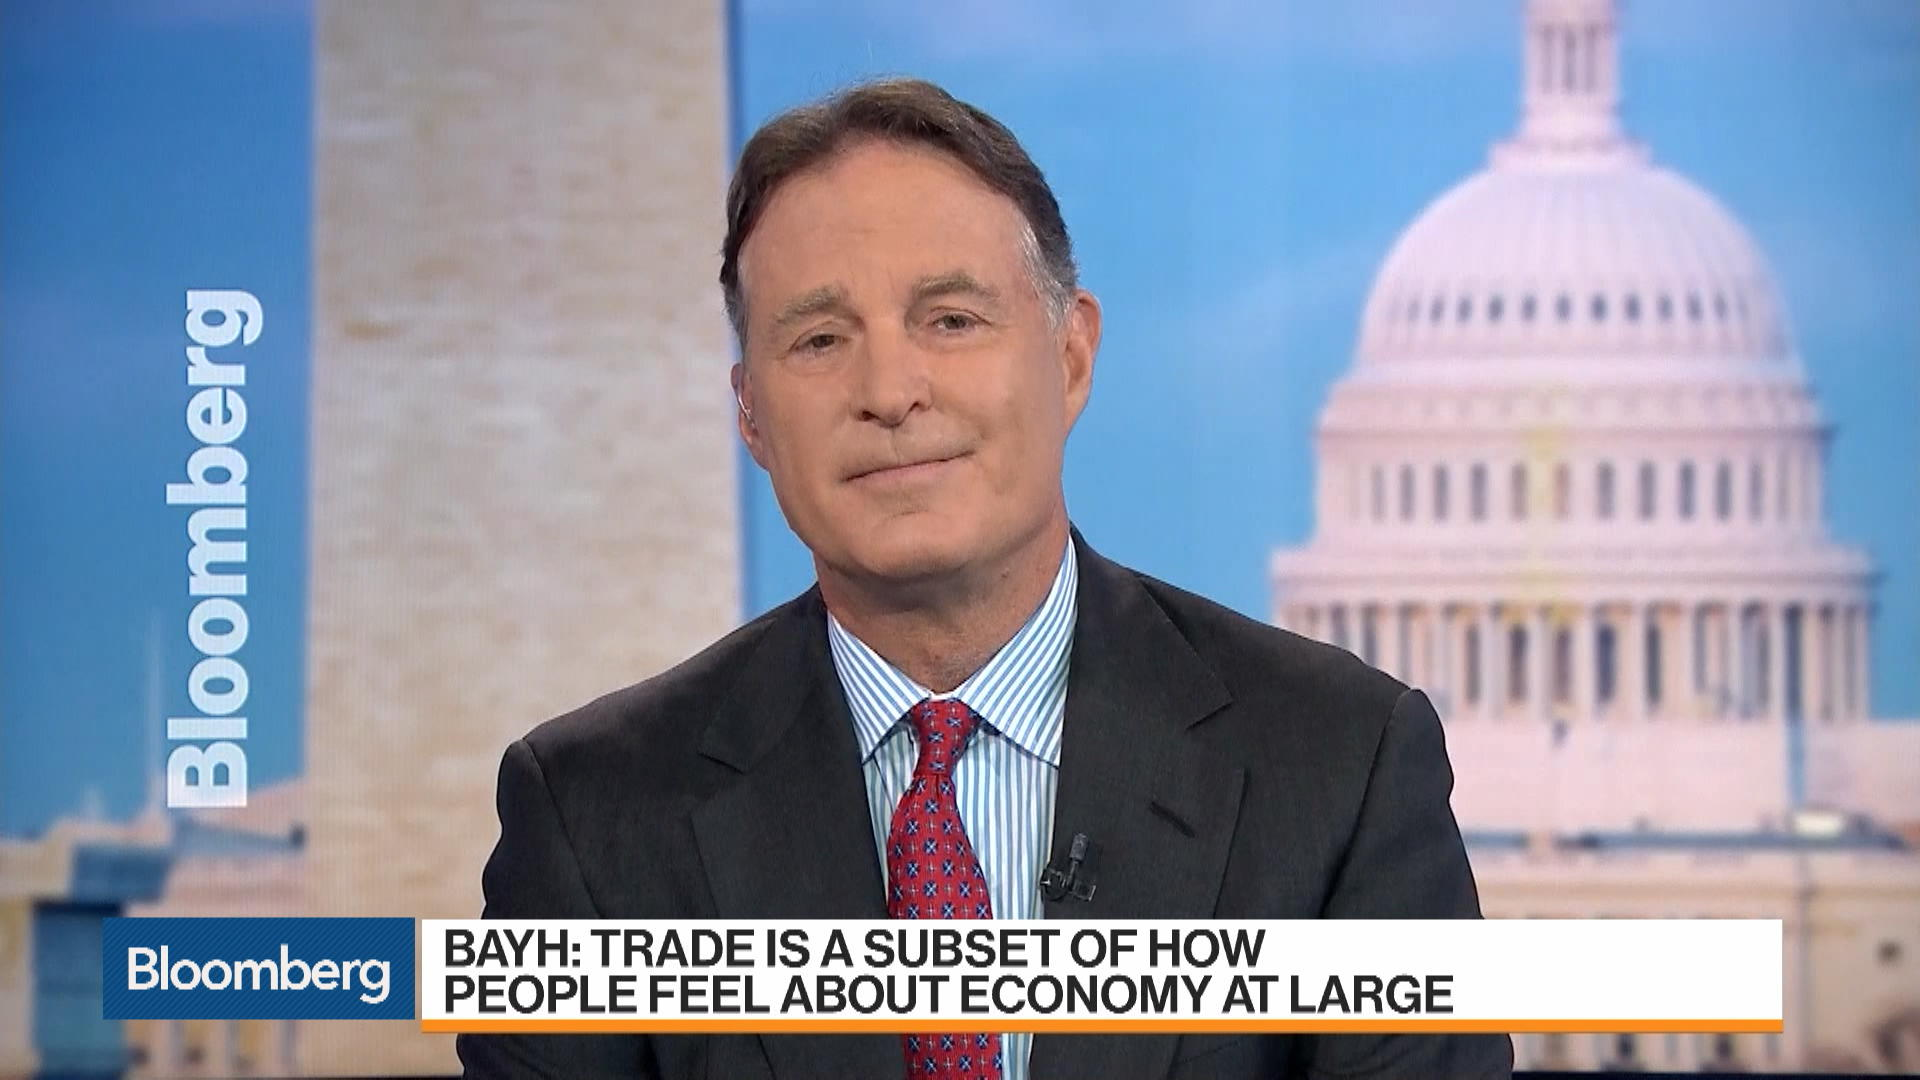 Trade Is a Subset of How People Feel About the Economy, Says Former Indiana Senator